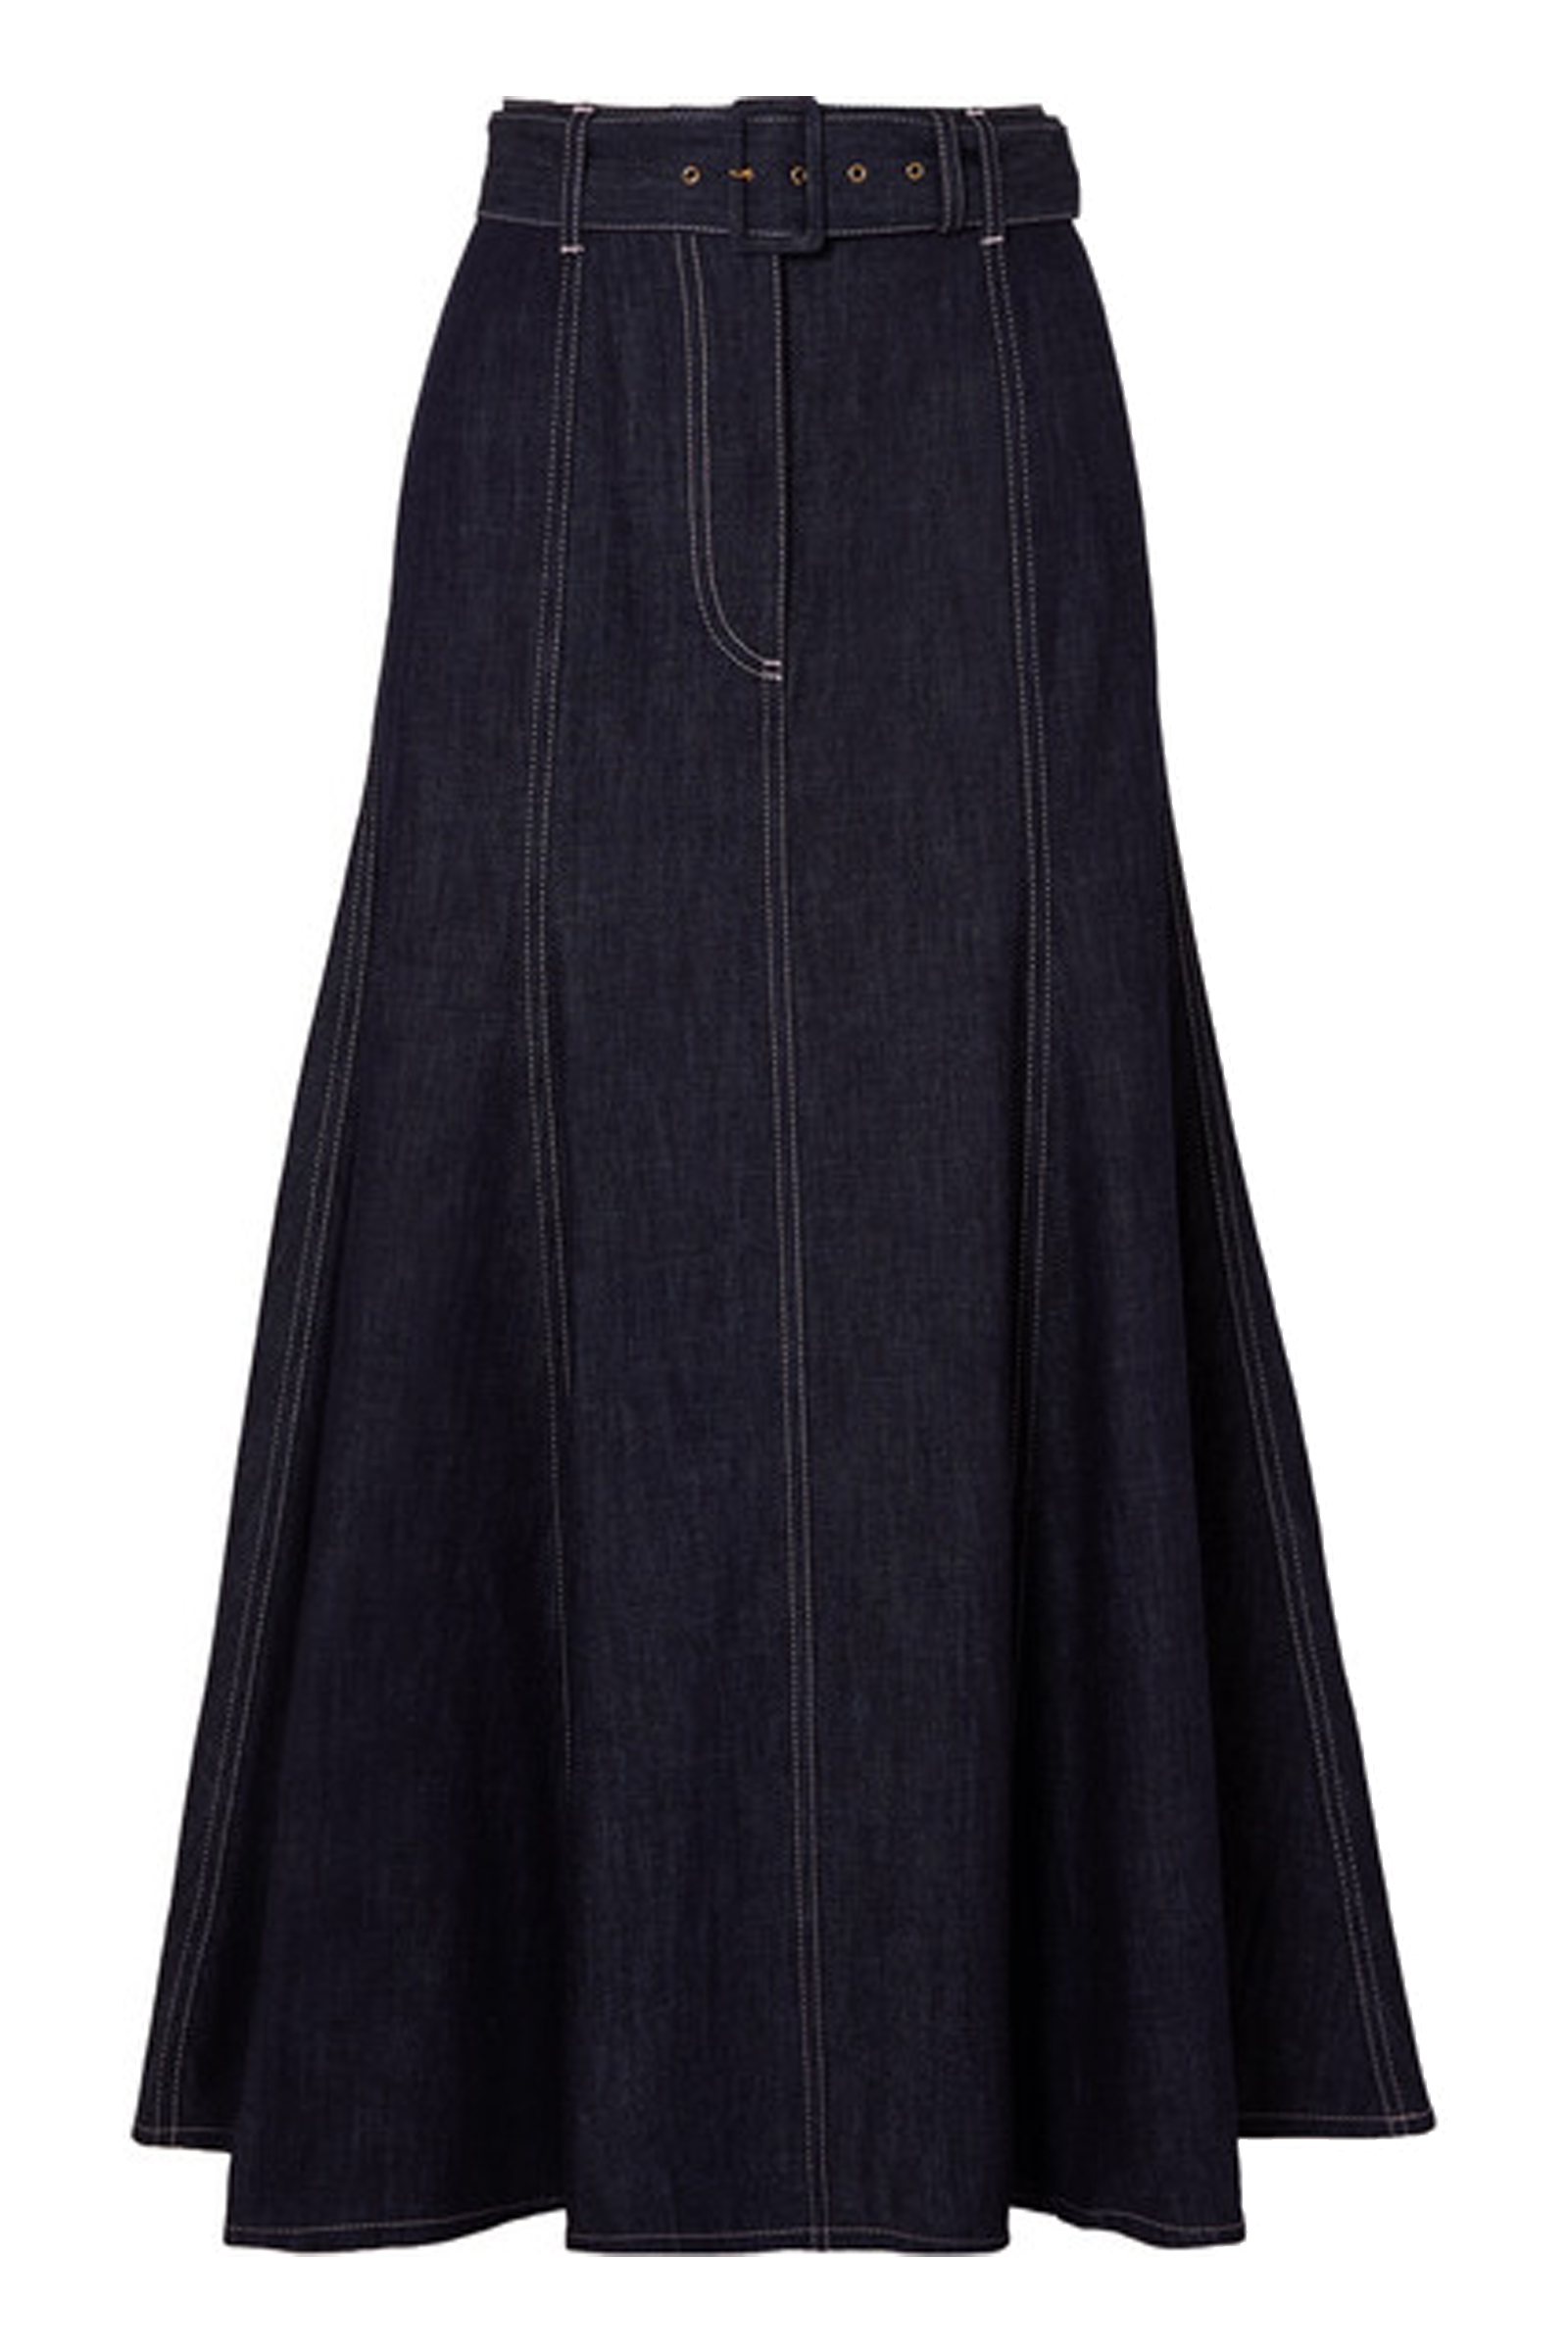 Emilia Wickstead Skirt